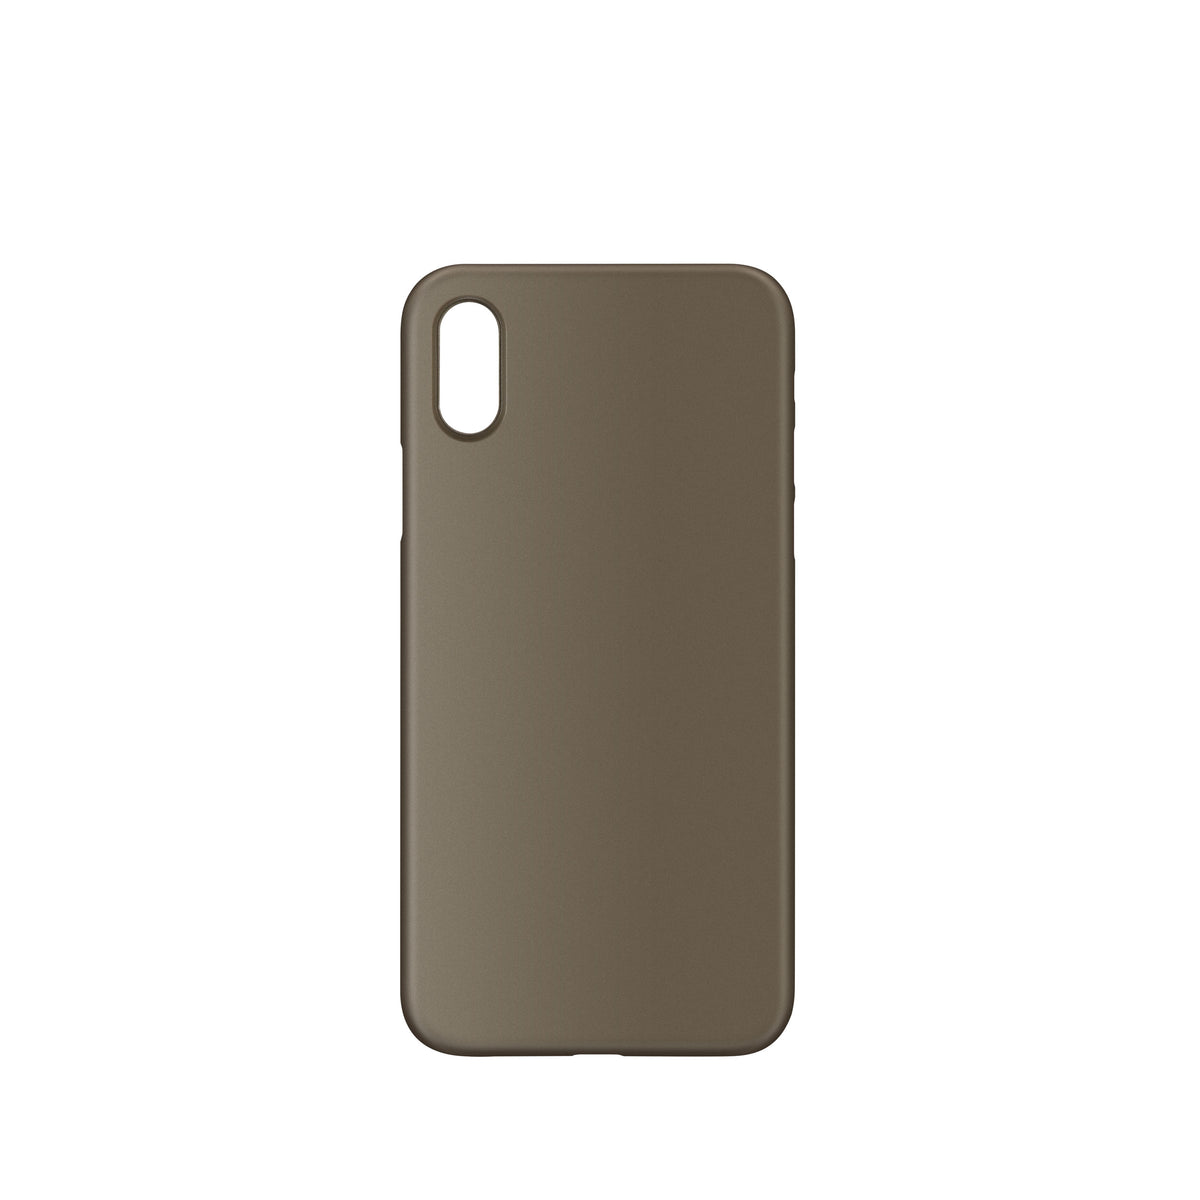 Thin iPhone XS Max Case